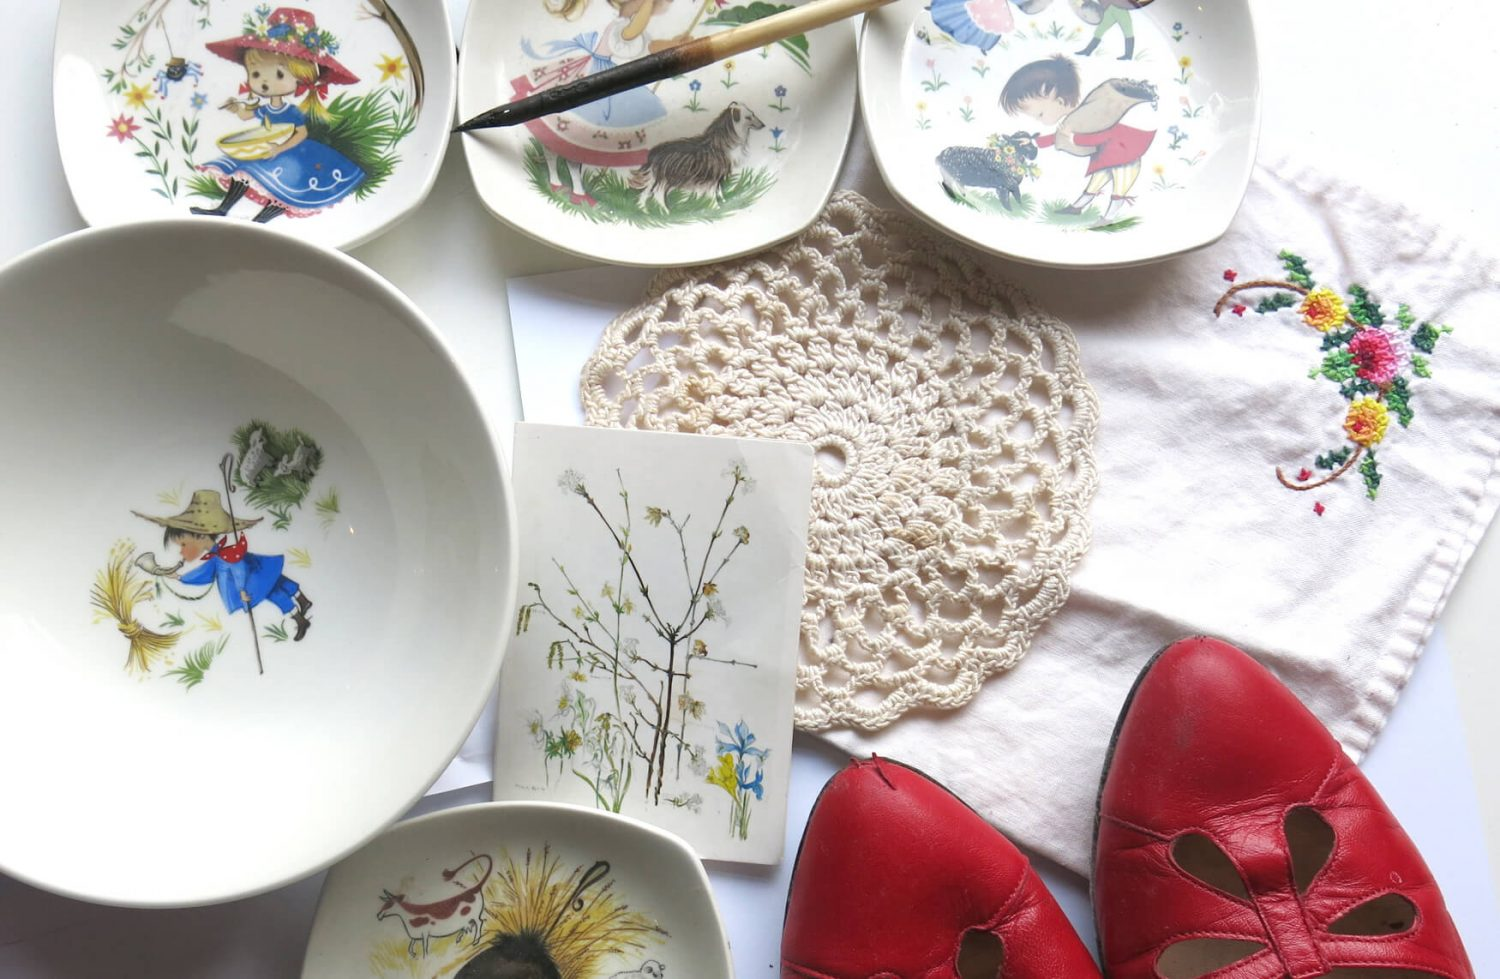 Anna's plates and possessions